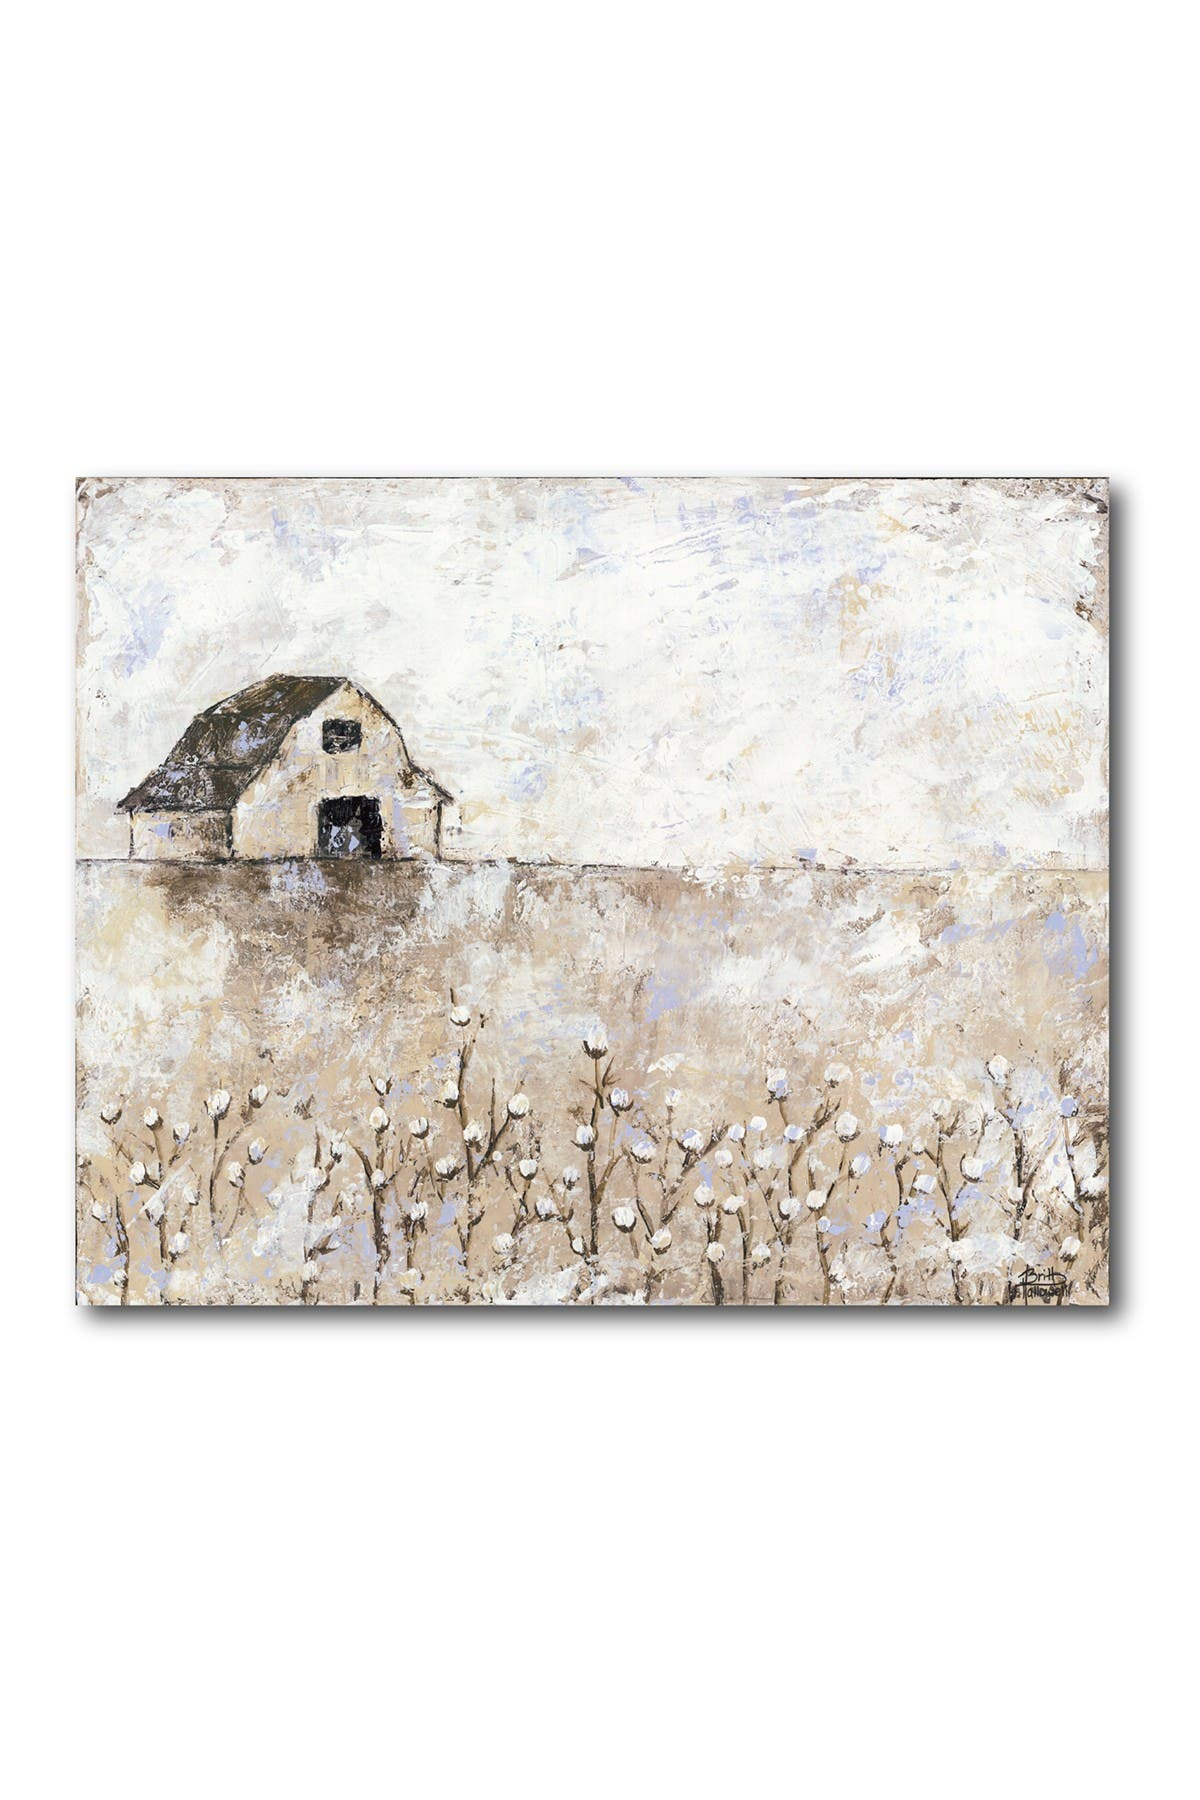 Courtside Market Cotton Farms Gallery Wrapped Canvas Wall Art Nordstrom Rack